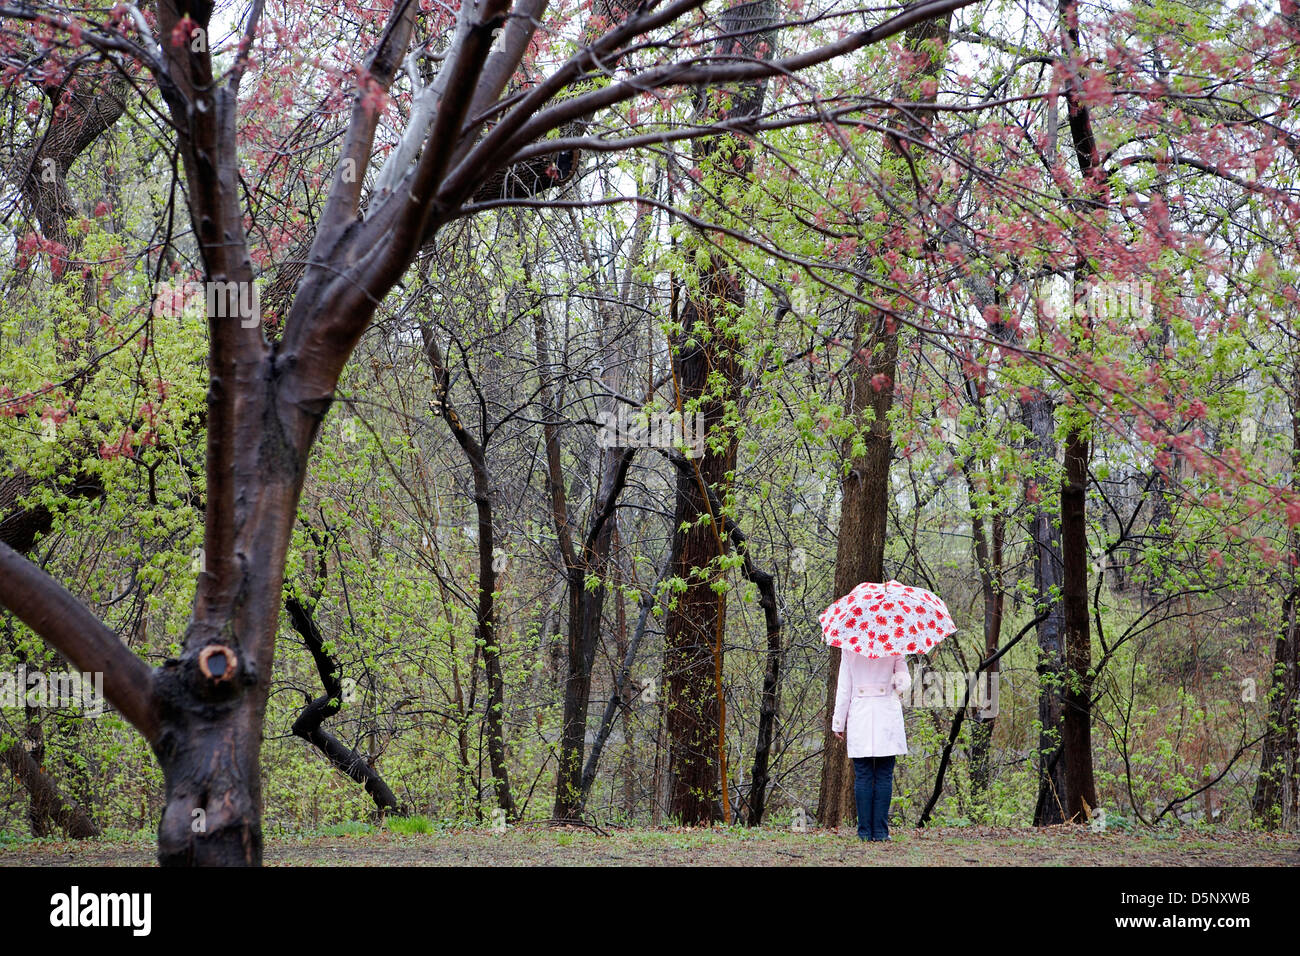 Woman holding umbrella in Spring landscape - Stock Image